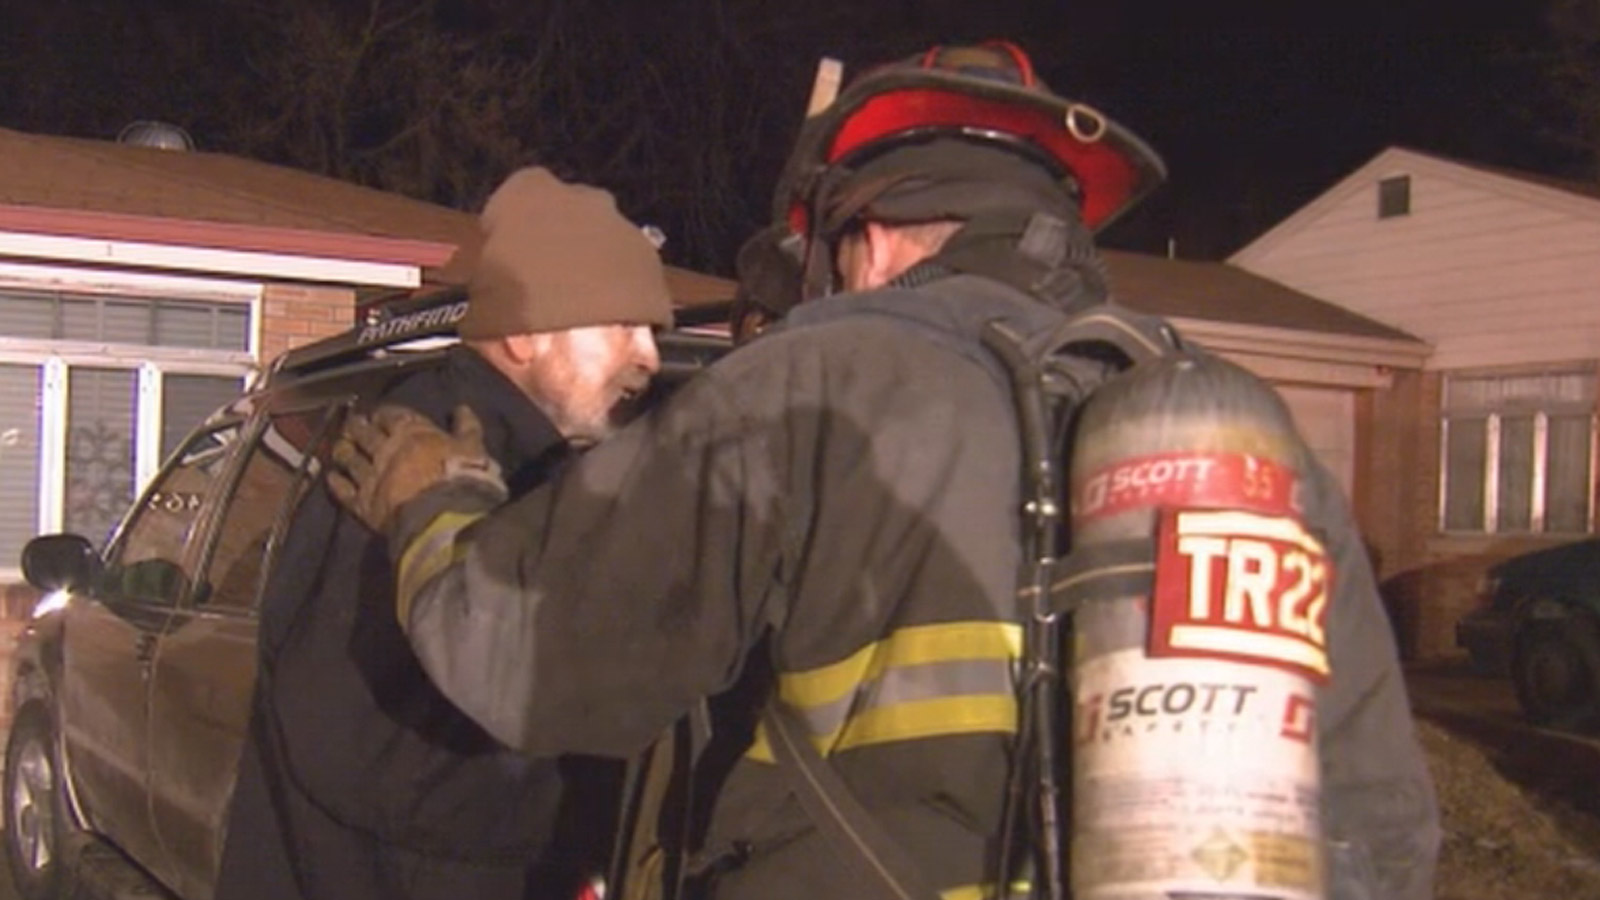 A firefighter comforts the homeowner's son after an early morning fire destroyed the home in the 1400 block of Bellaire Street. (credit: CBS)